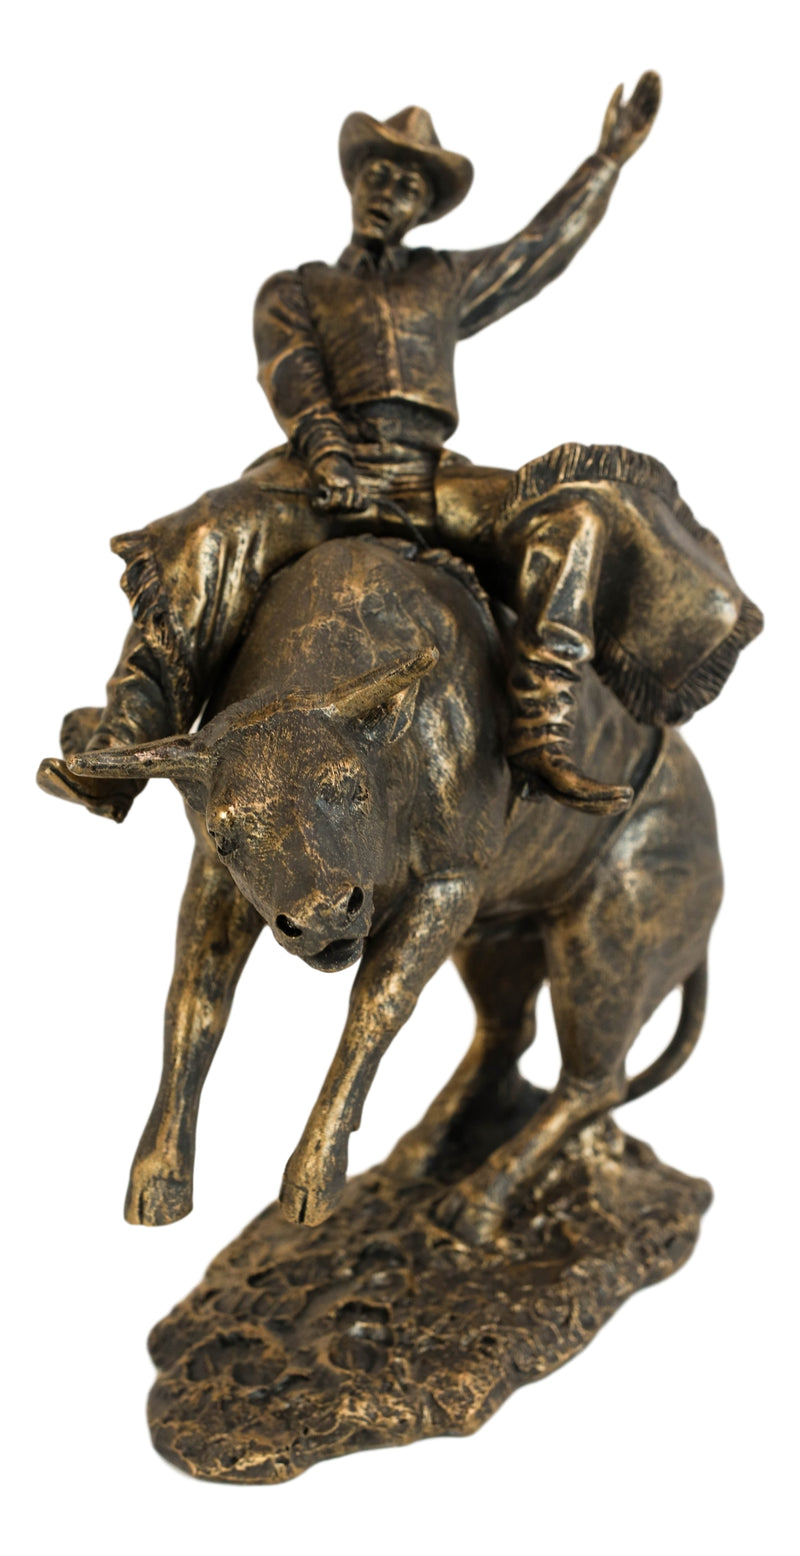 "Old World Rustic Western Cowboy Riding A Rearing Angry Bull Rodeo Statue 10""H"